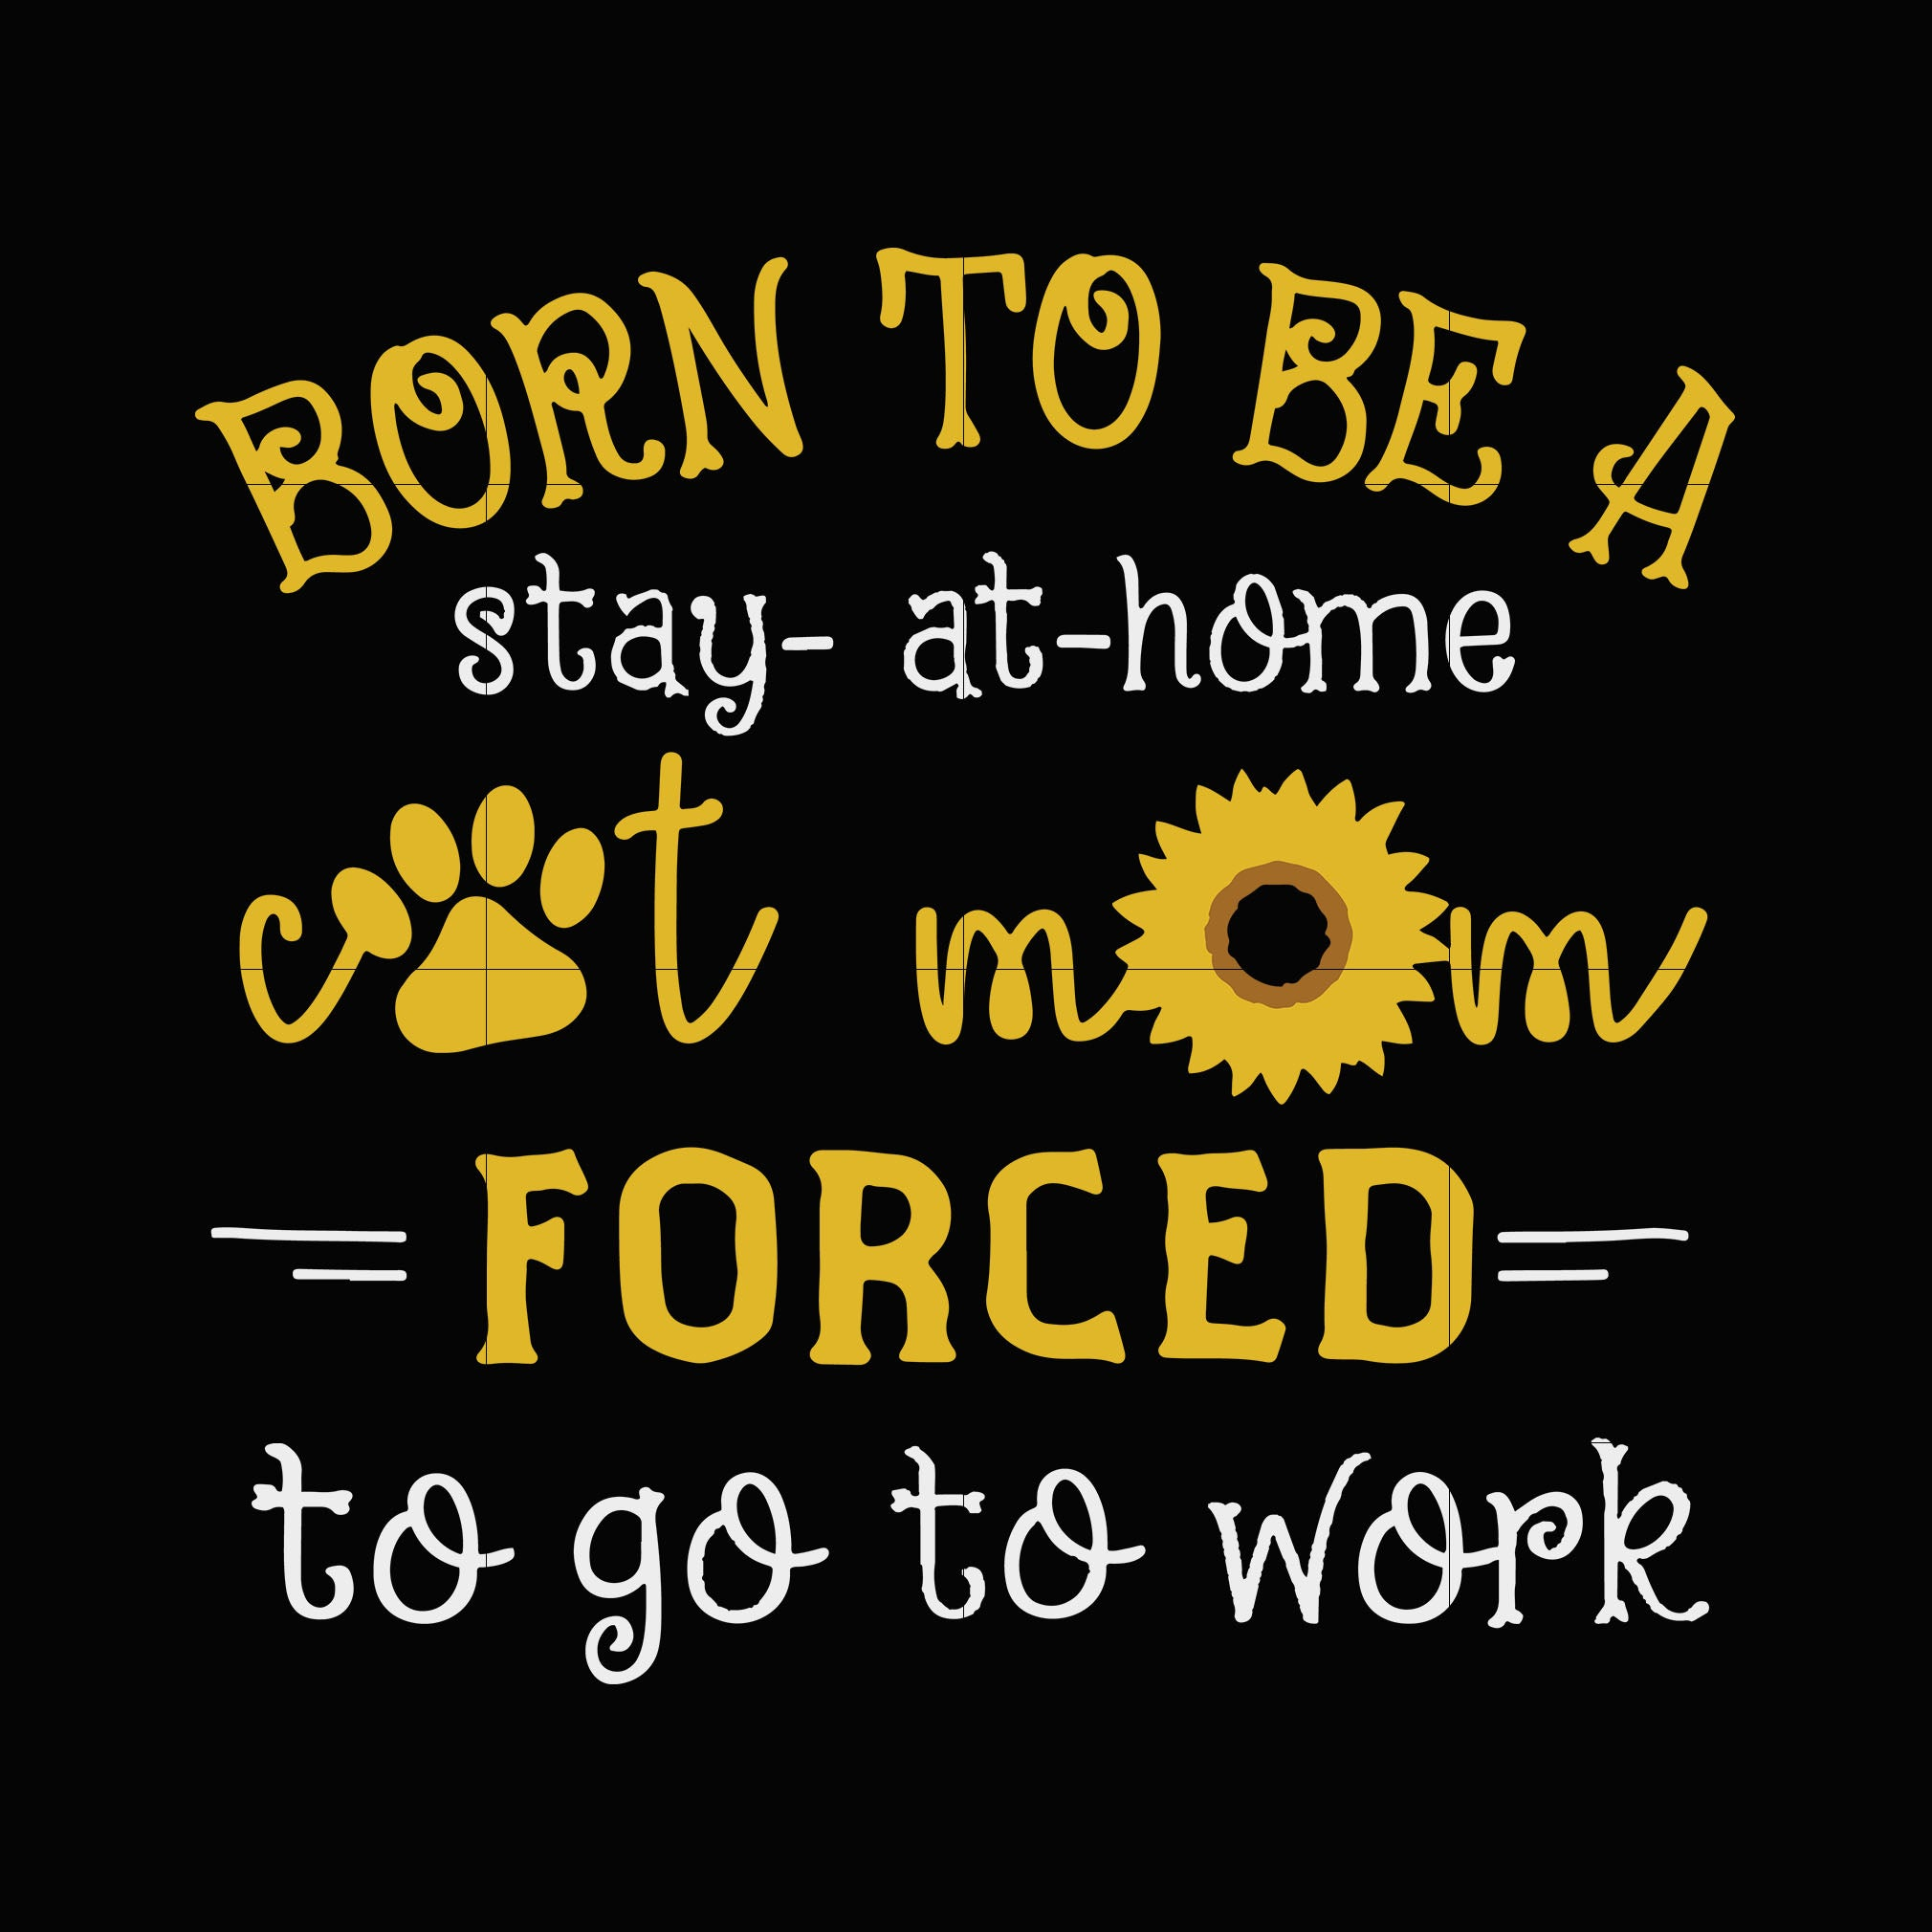 Born to be a stay at home cat mom forced to go to work svg,dxf,eps,png digital file